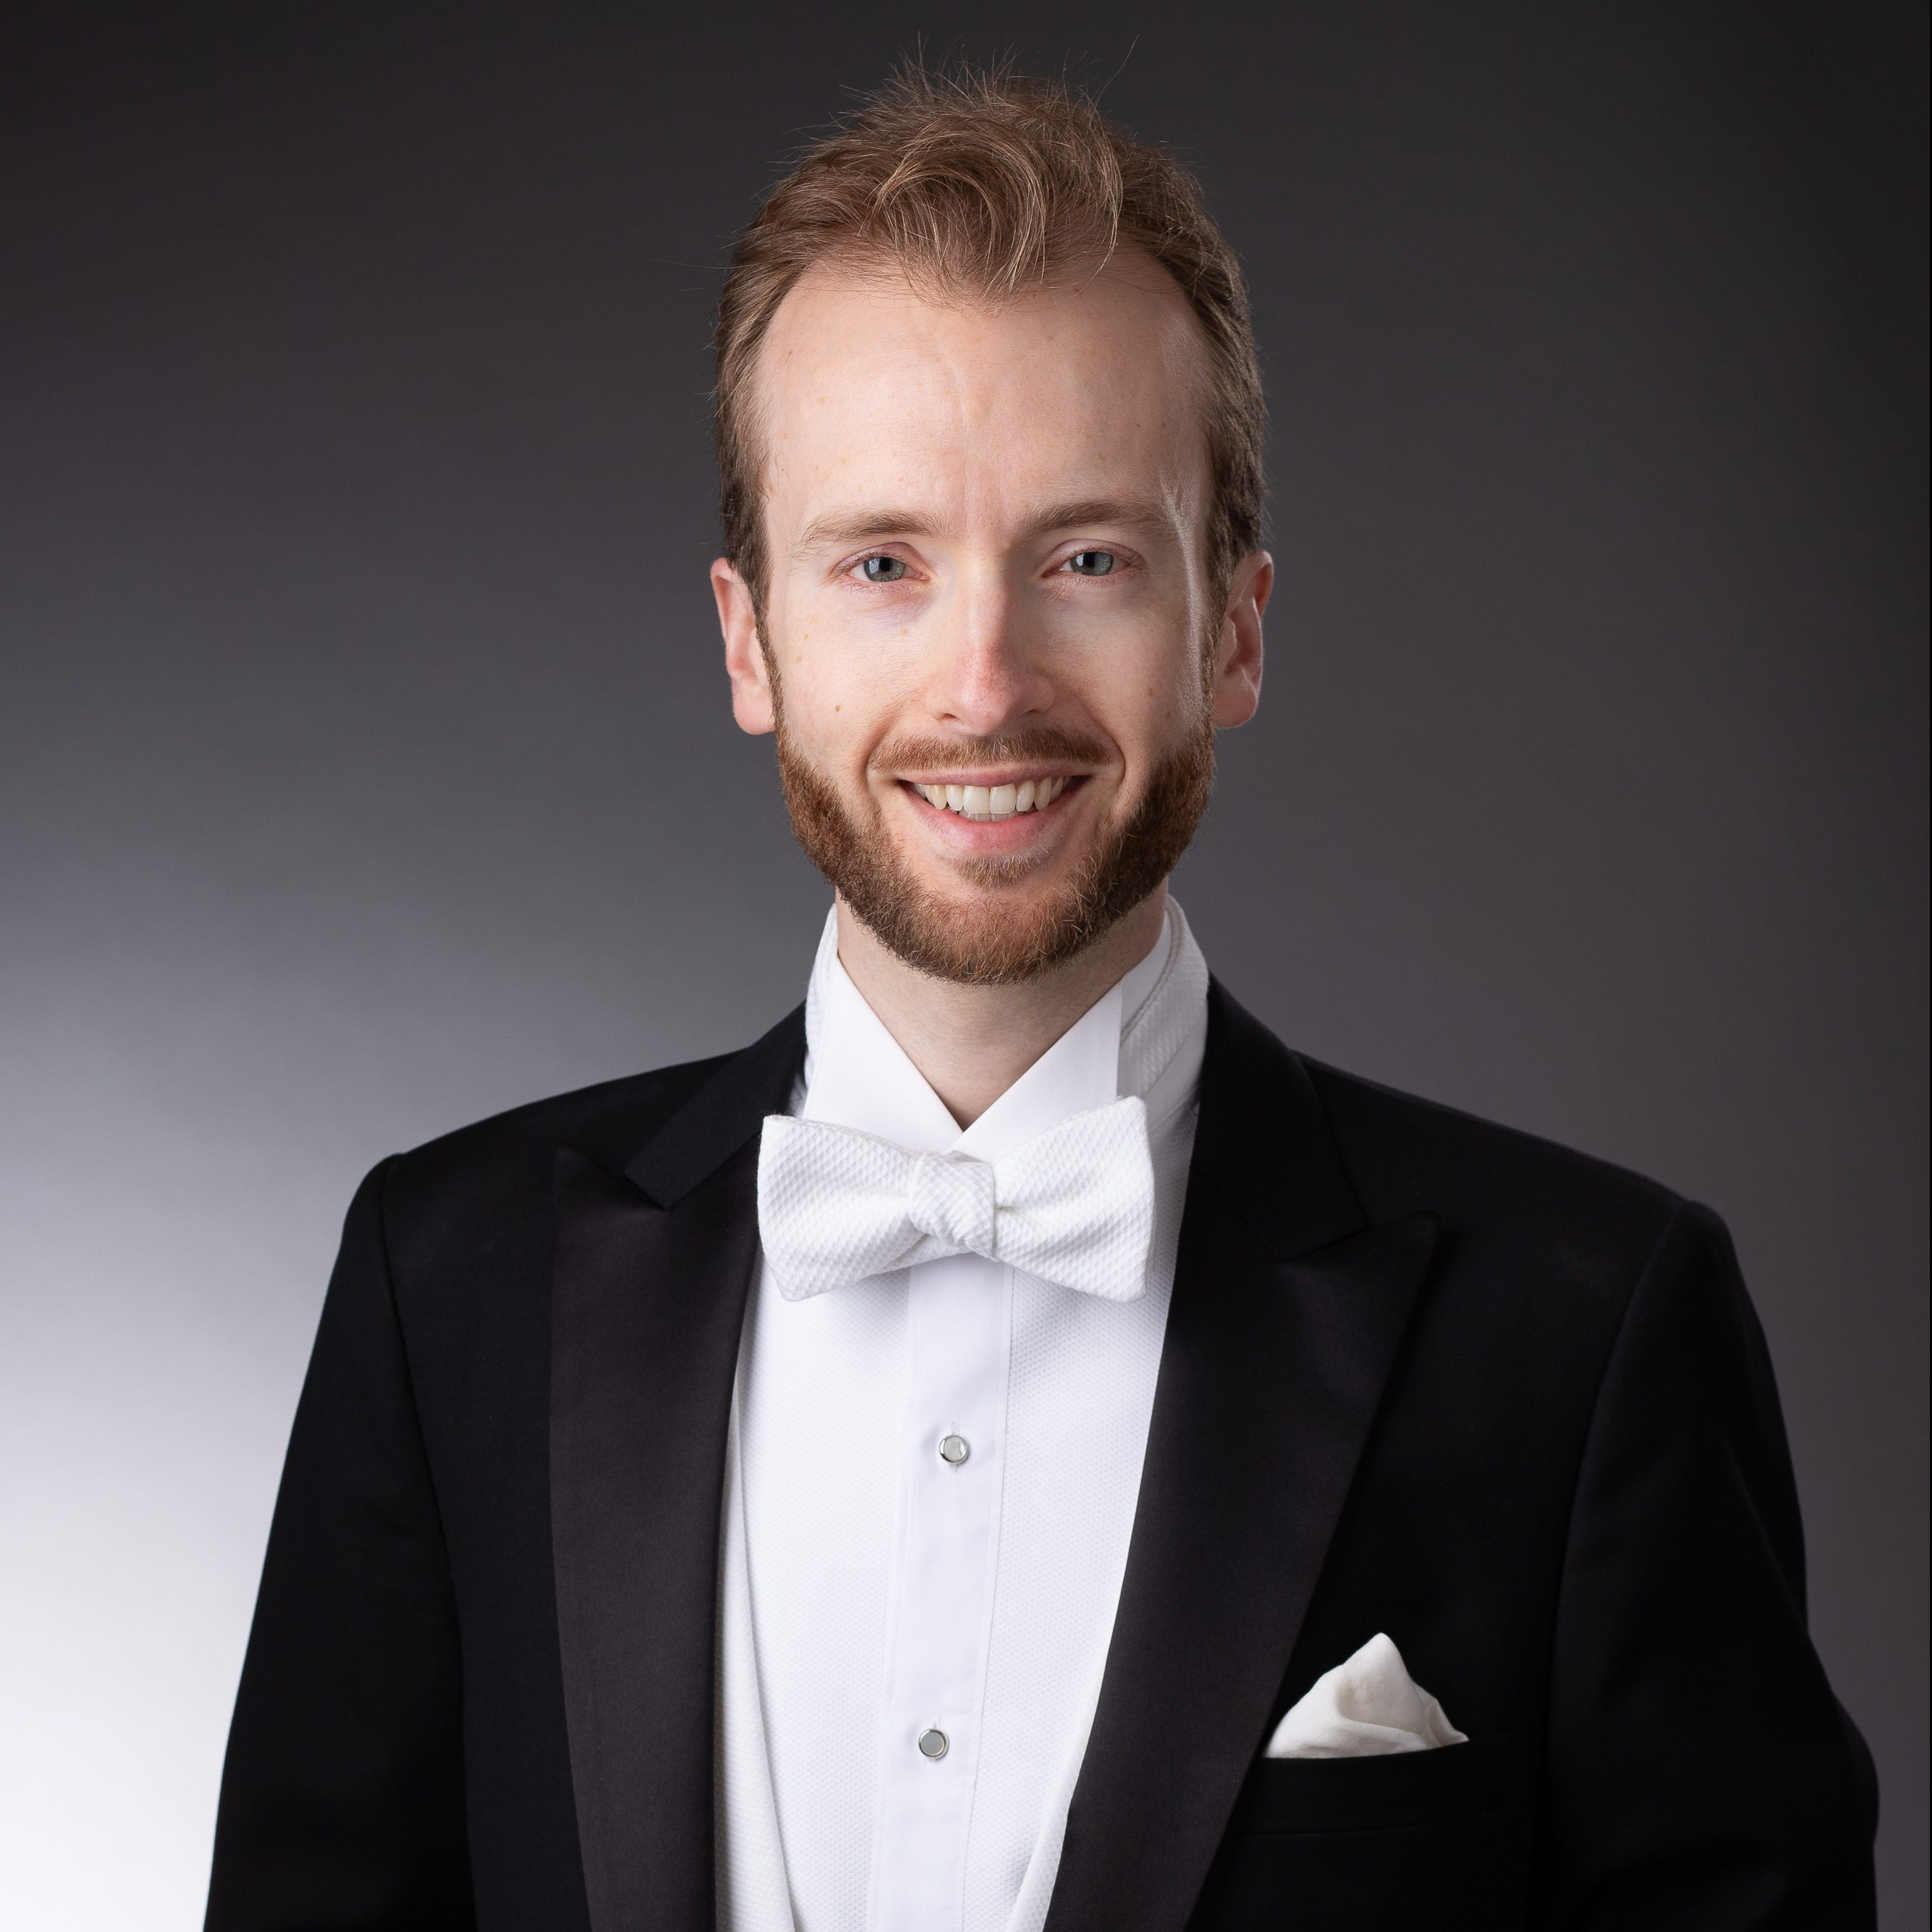 https://www.seattlechambermusic.org/wp-content/uploads/william-c-white-headshot-e1557961340447.jpg